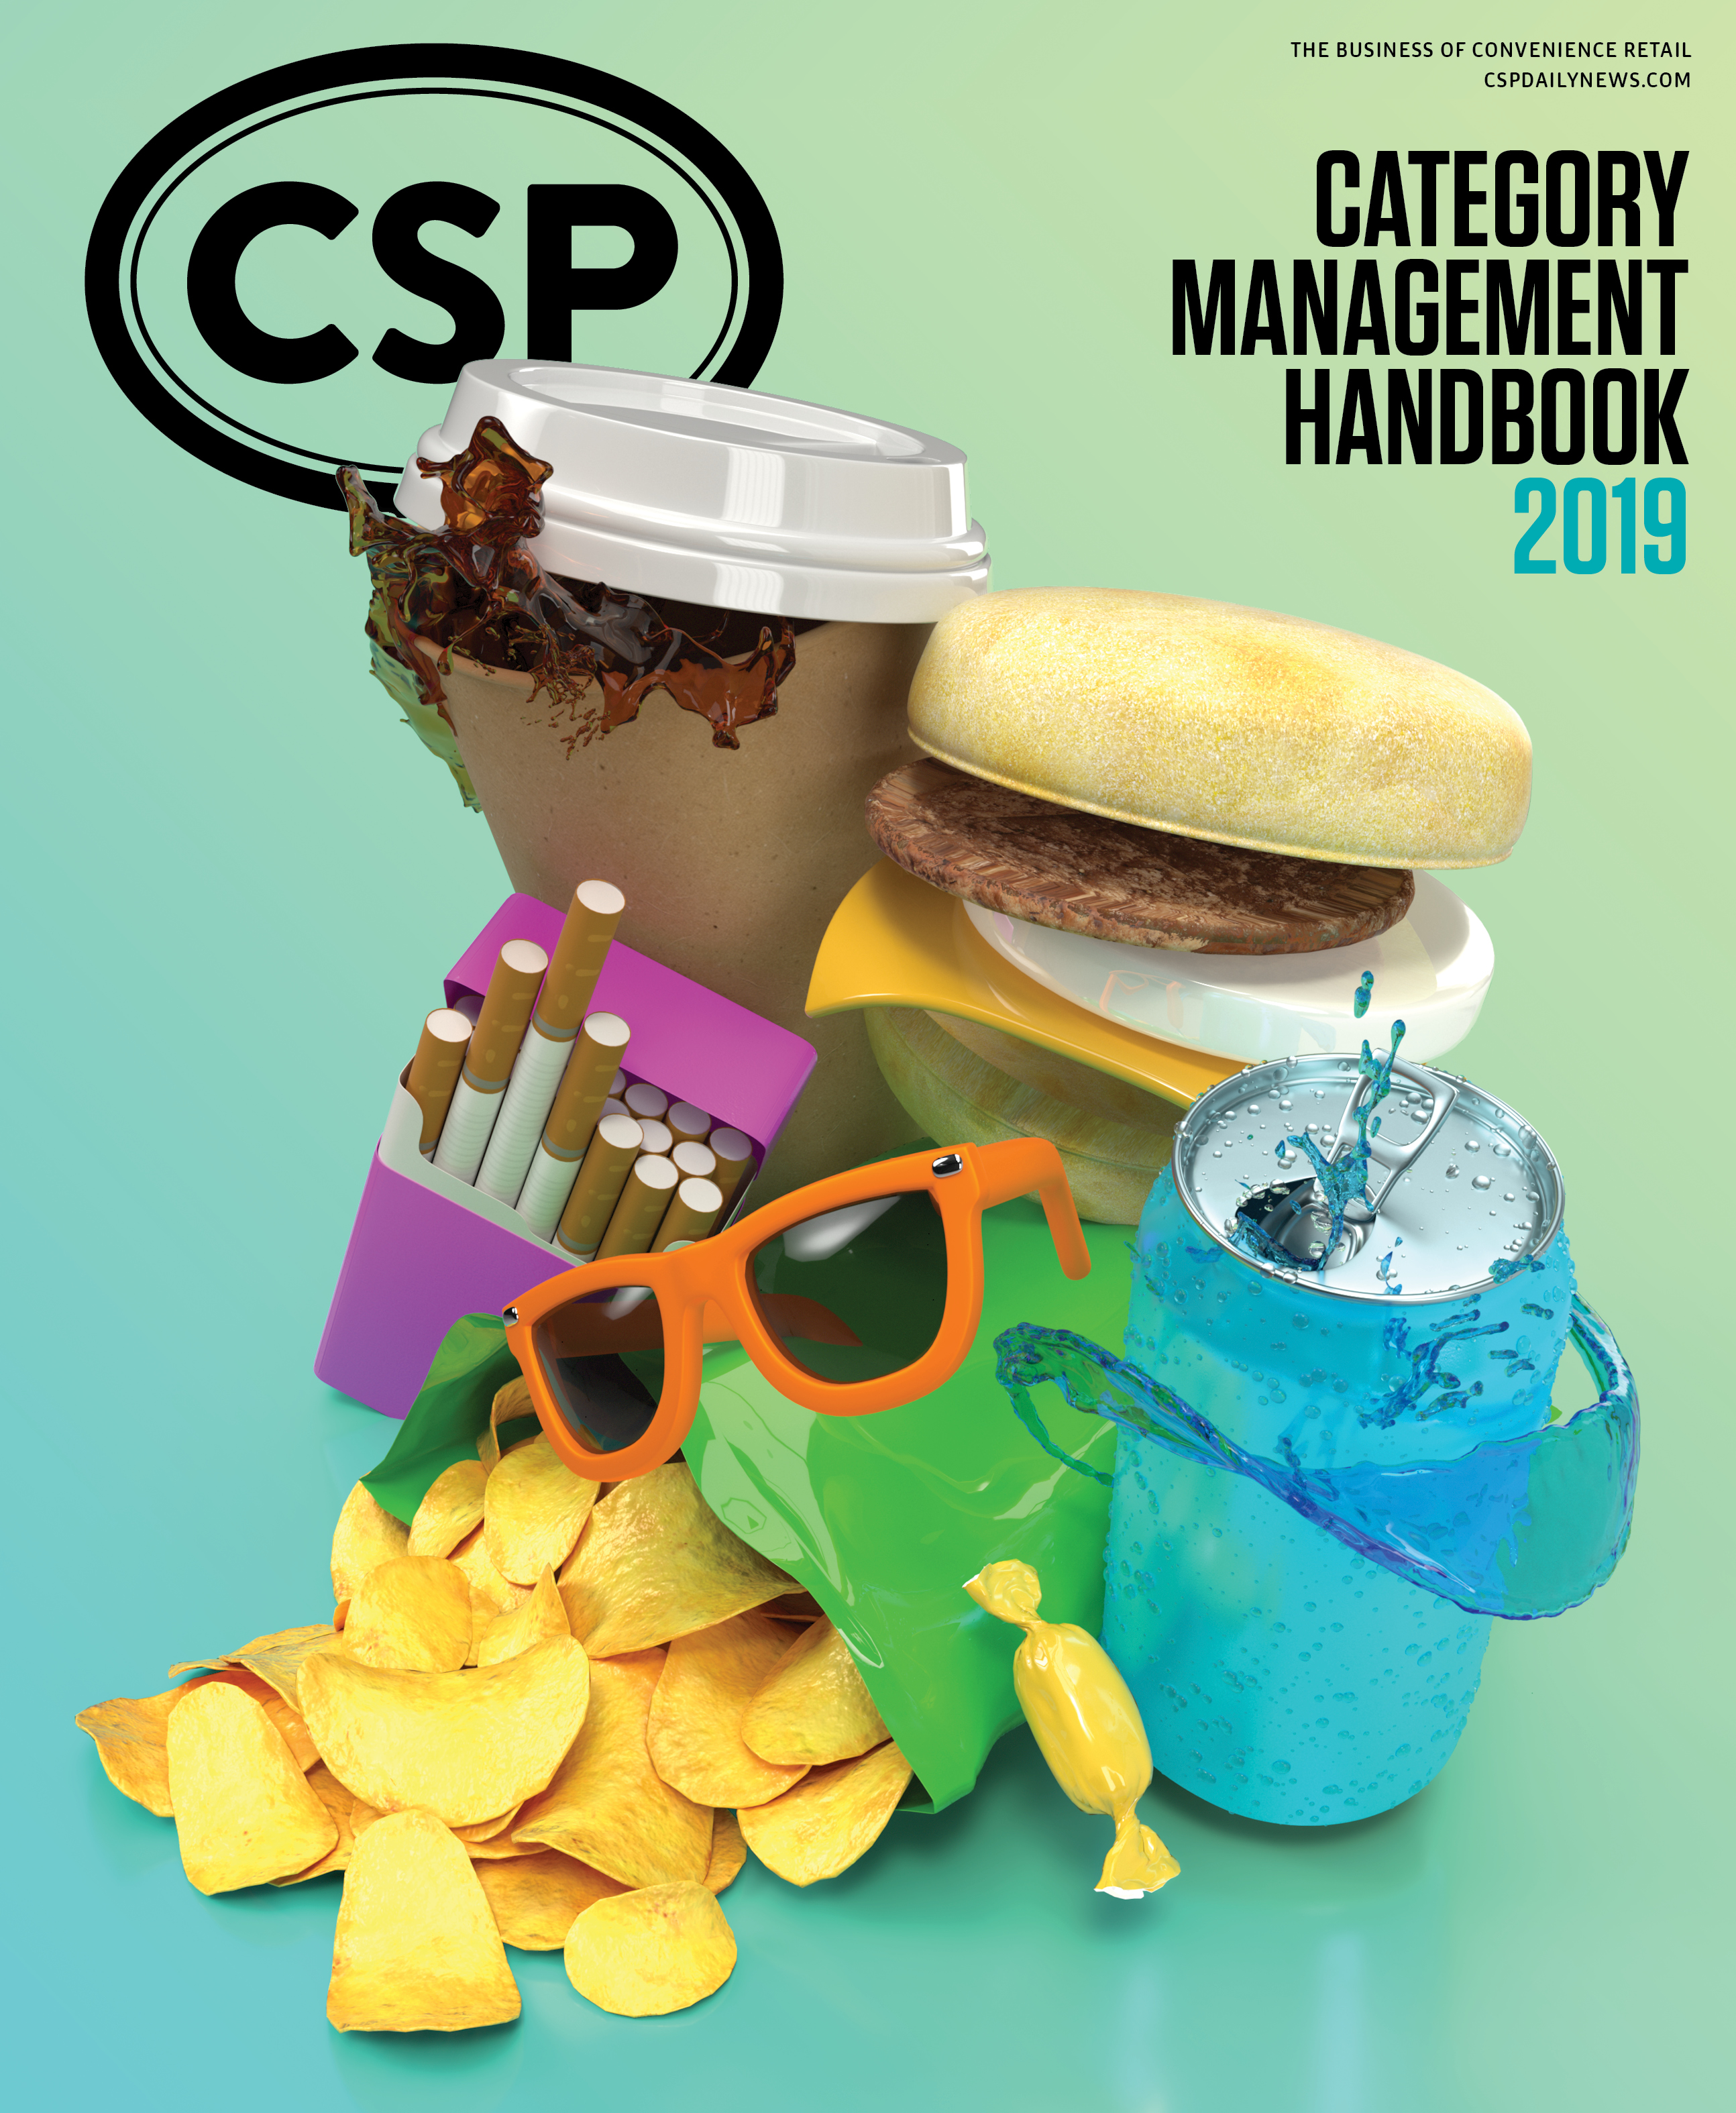 CSP Daily News Magazine Category Management Handbook 2019 Issue